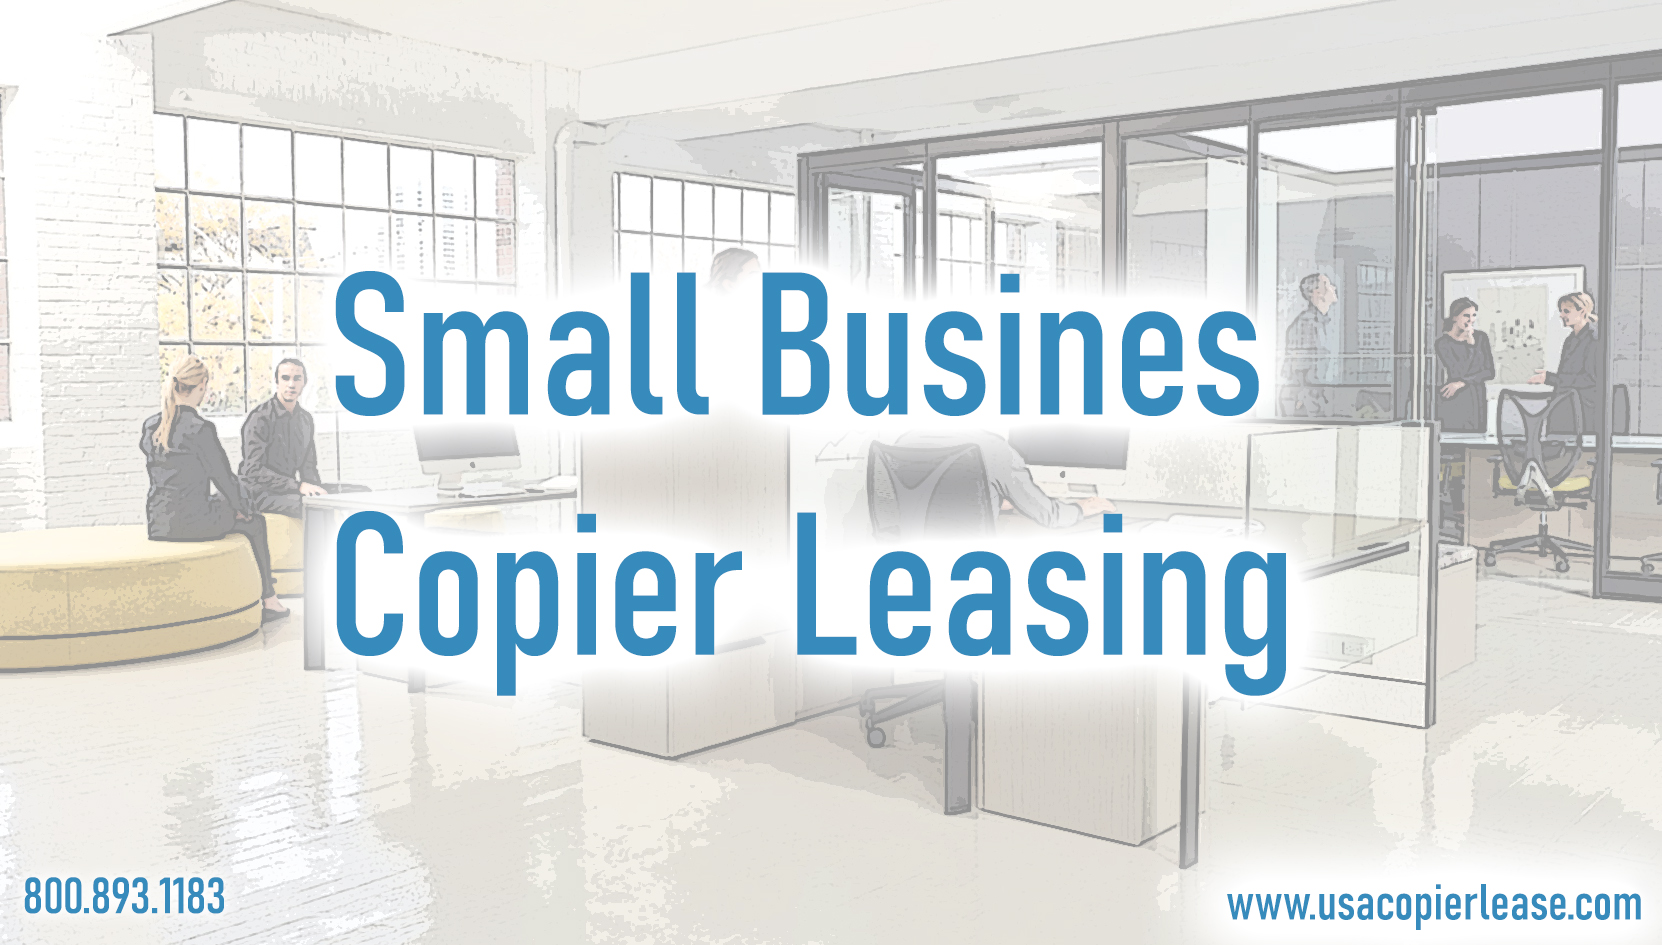 How to: Lease Copiers for a Small Business